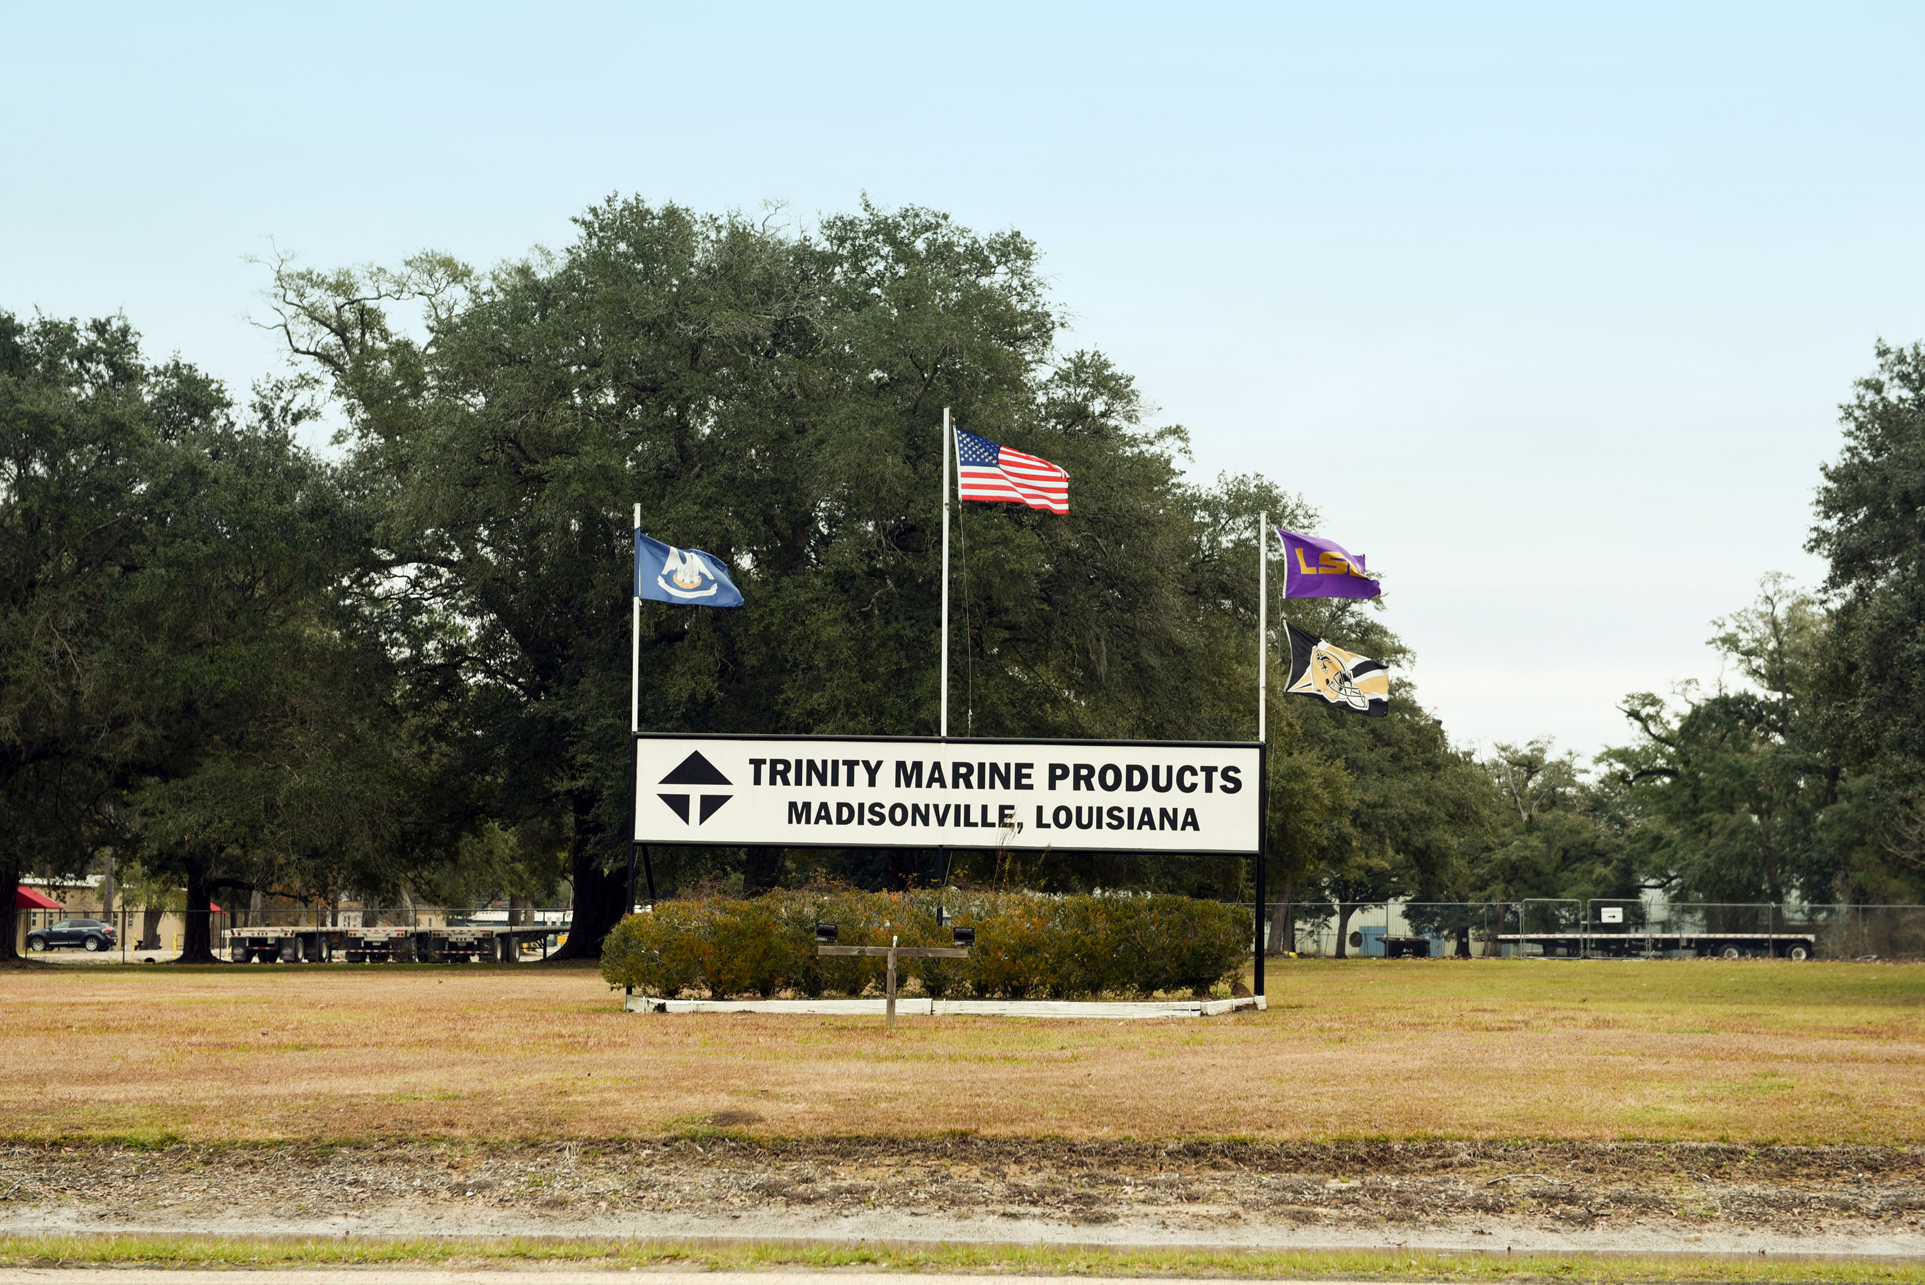 IDLED: Trinity Marine Products is in the midst of closing its Madisonville barge fabrication operation, where 324 workers had been laid off or resigned by the end of December. (Photo by Cheryl Gerber)